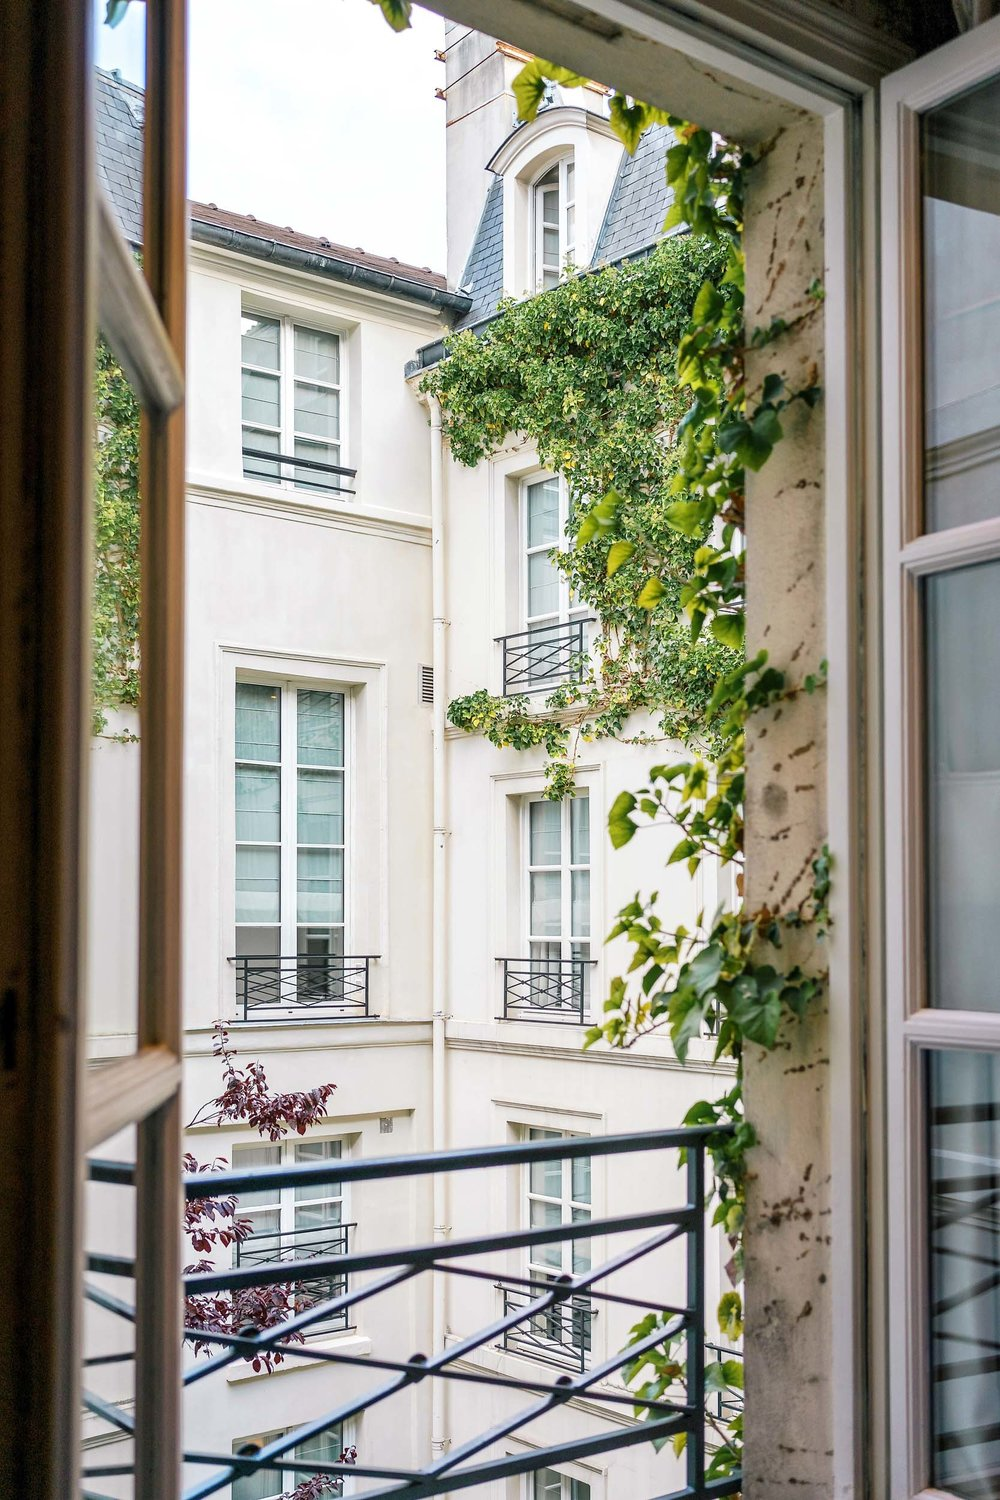 Where to stay in Paris: le Pavillon de la Reine in le Marais